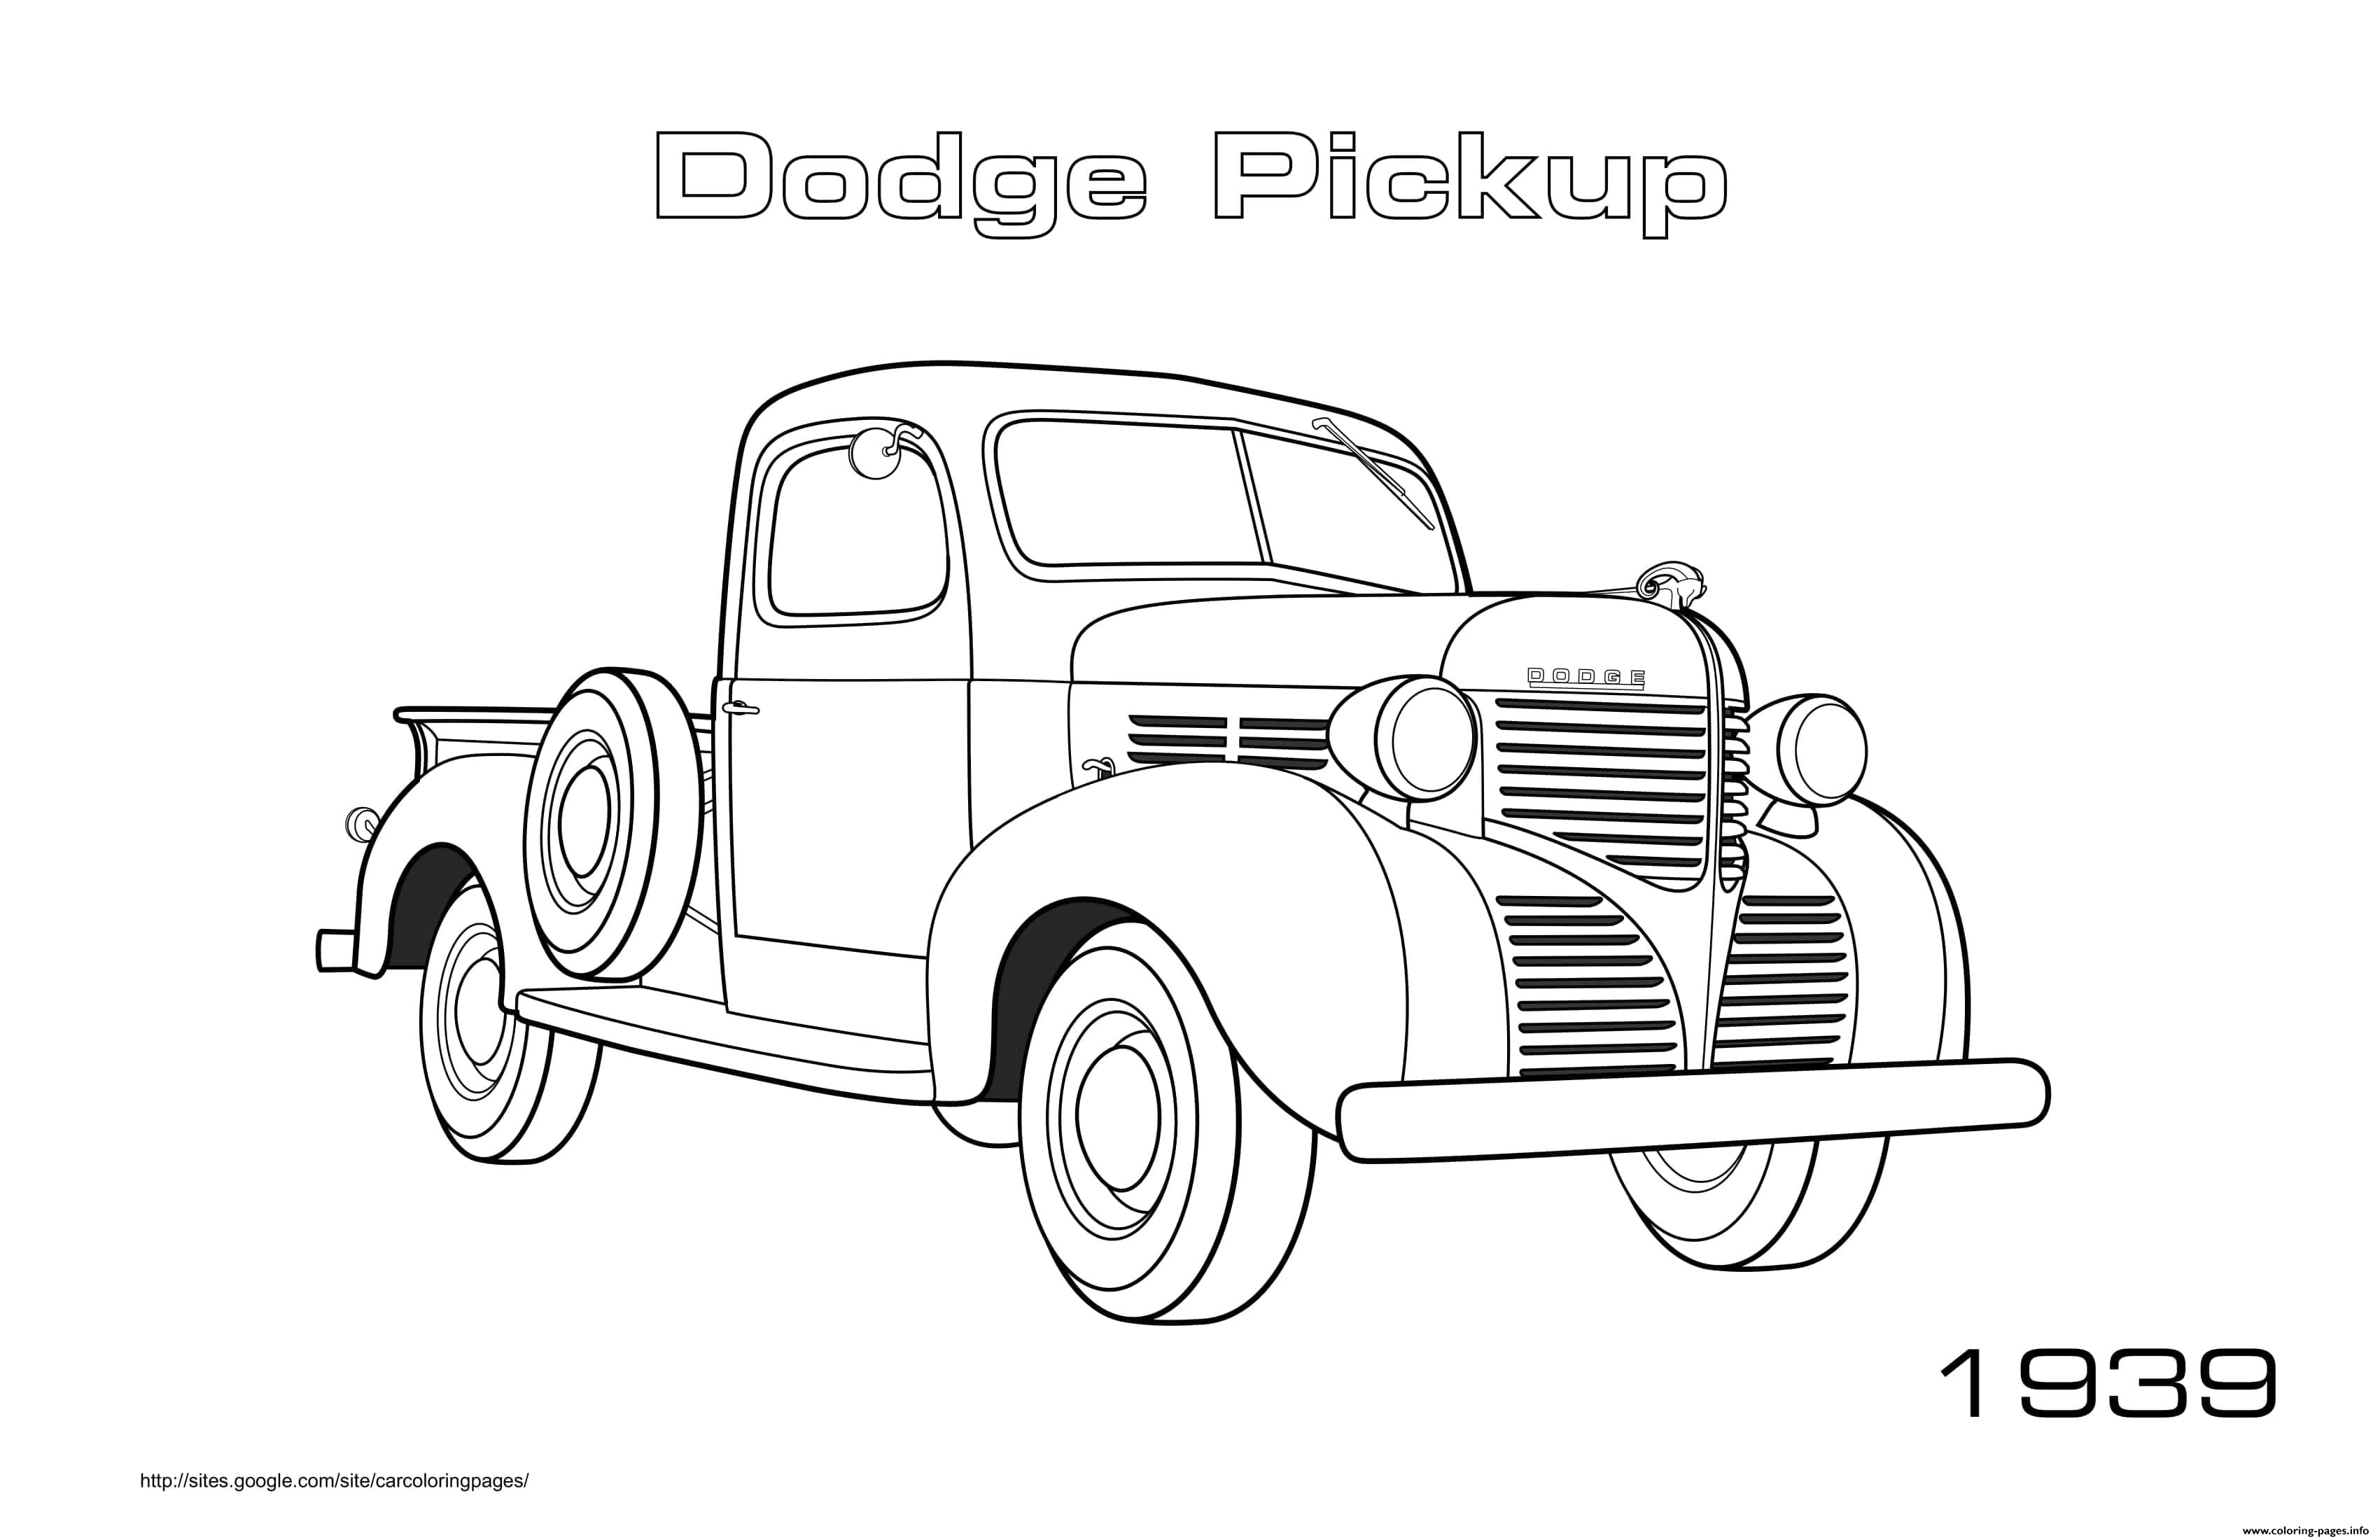 old fashioned cars coloring pages | Old Car Dodge Pickup 1939 Coloring Pages Printable